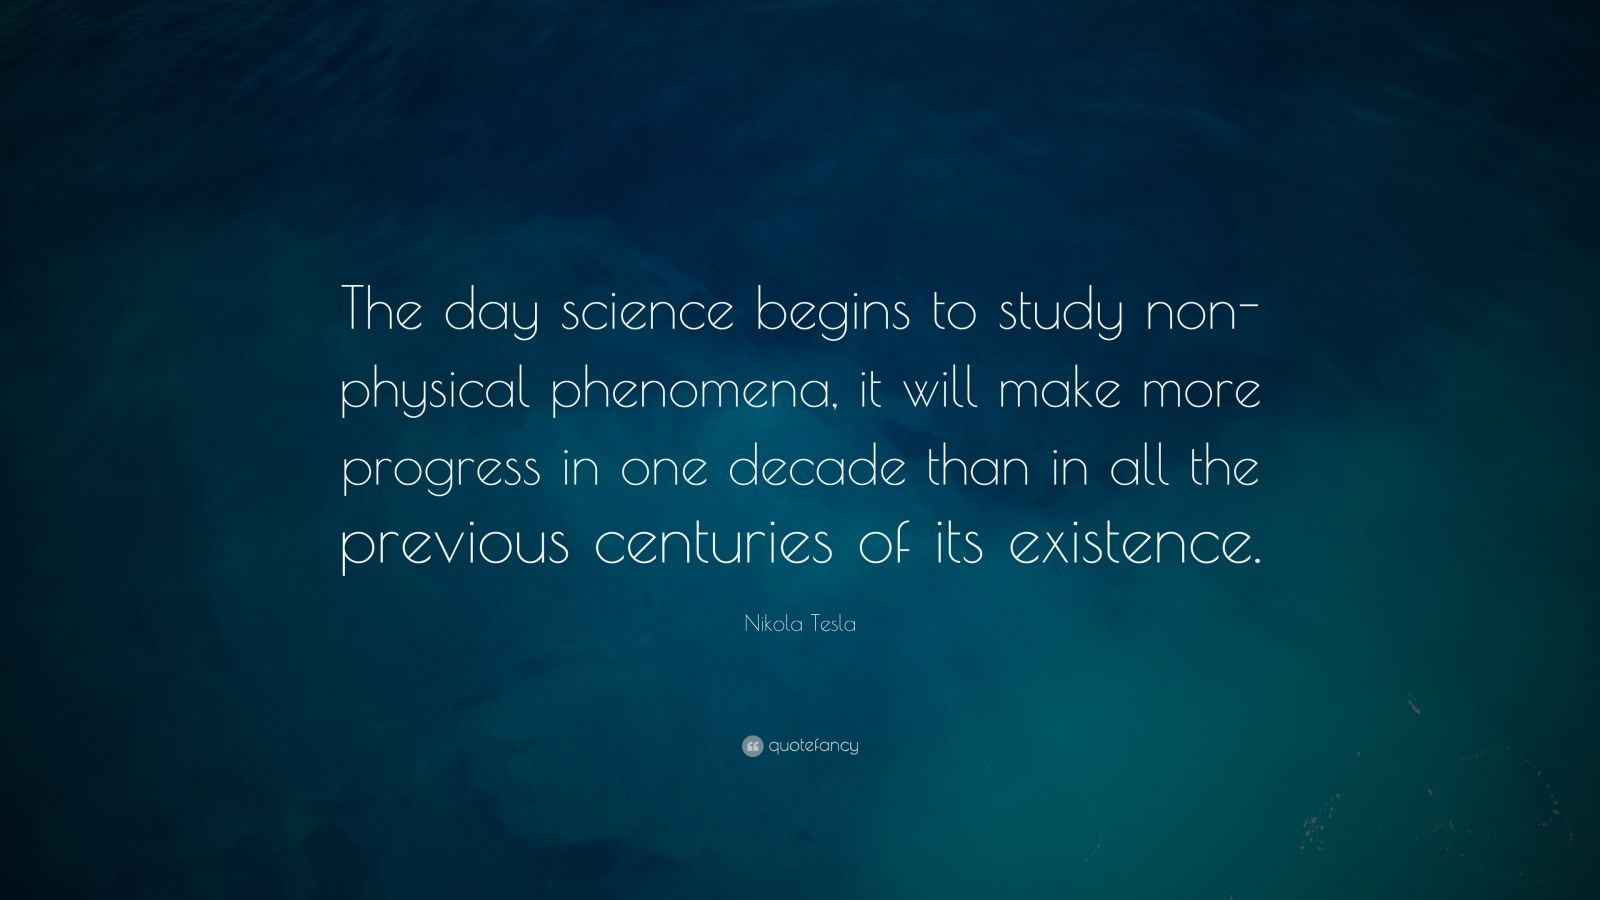 """Nikola Tesla Quote: """"The day science begins to study non-physical phenomena, it will make more progress in one decade than in all the previous centuries of its existence."""""""